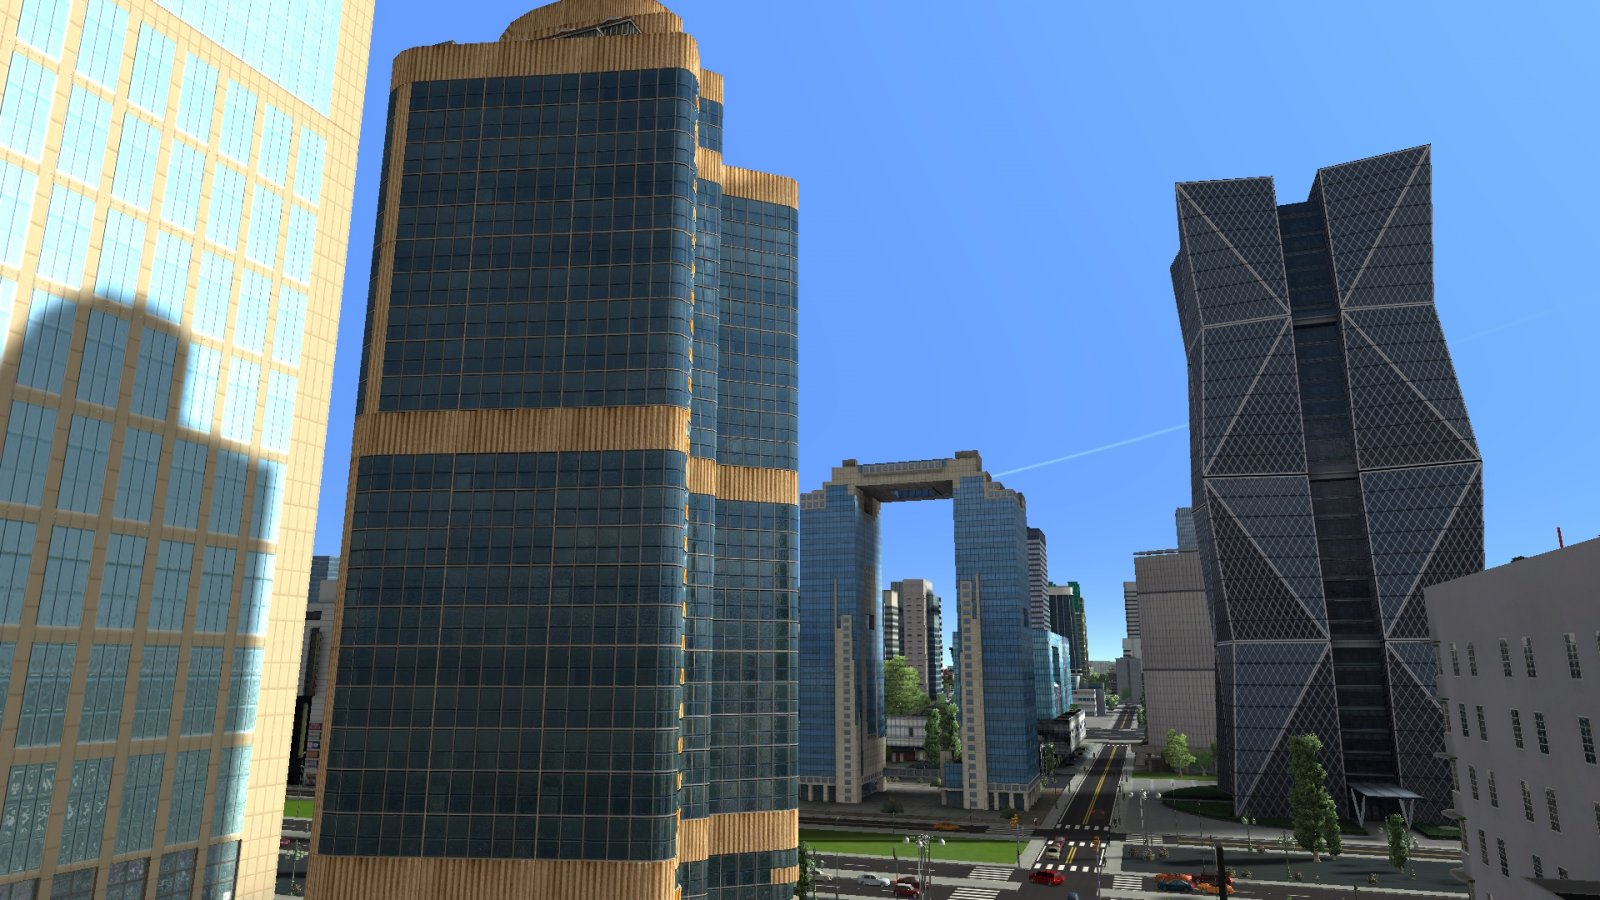 cxl_screenshot_la defense_31.jpg